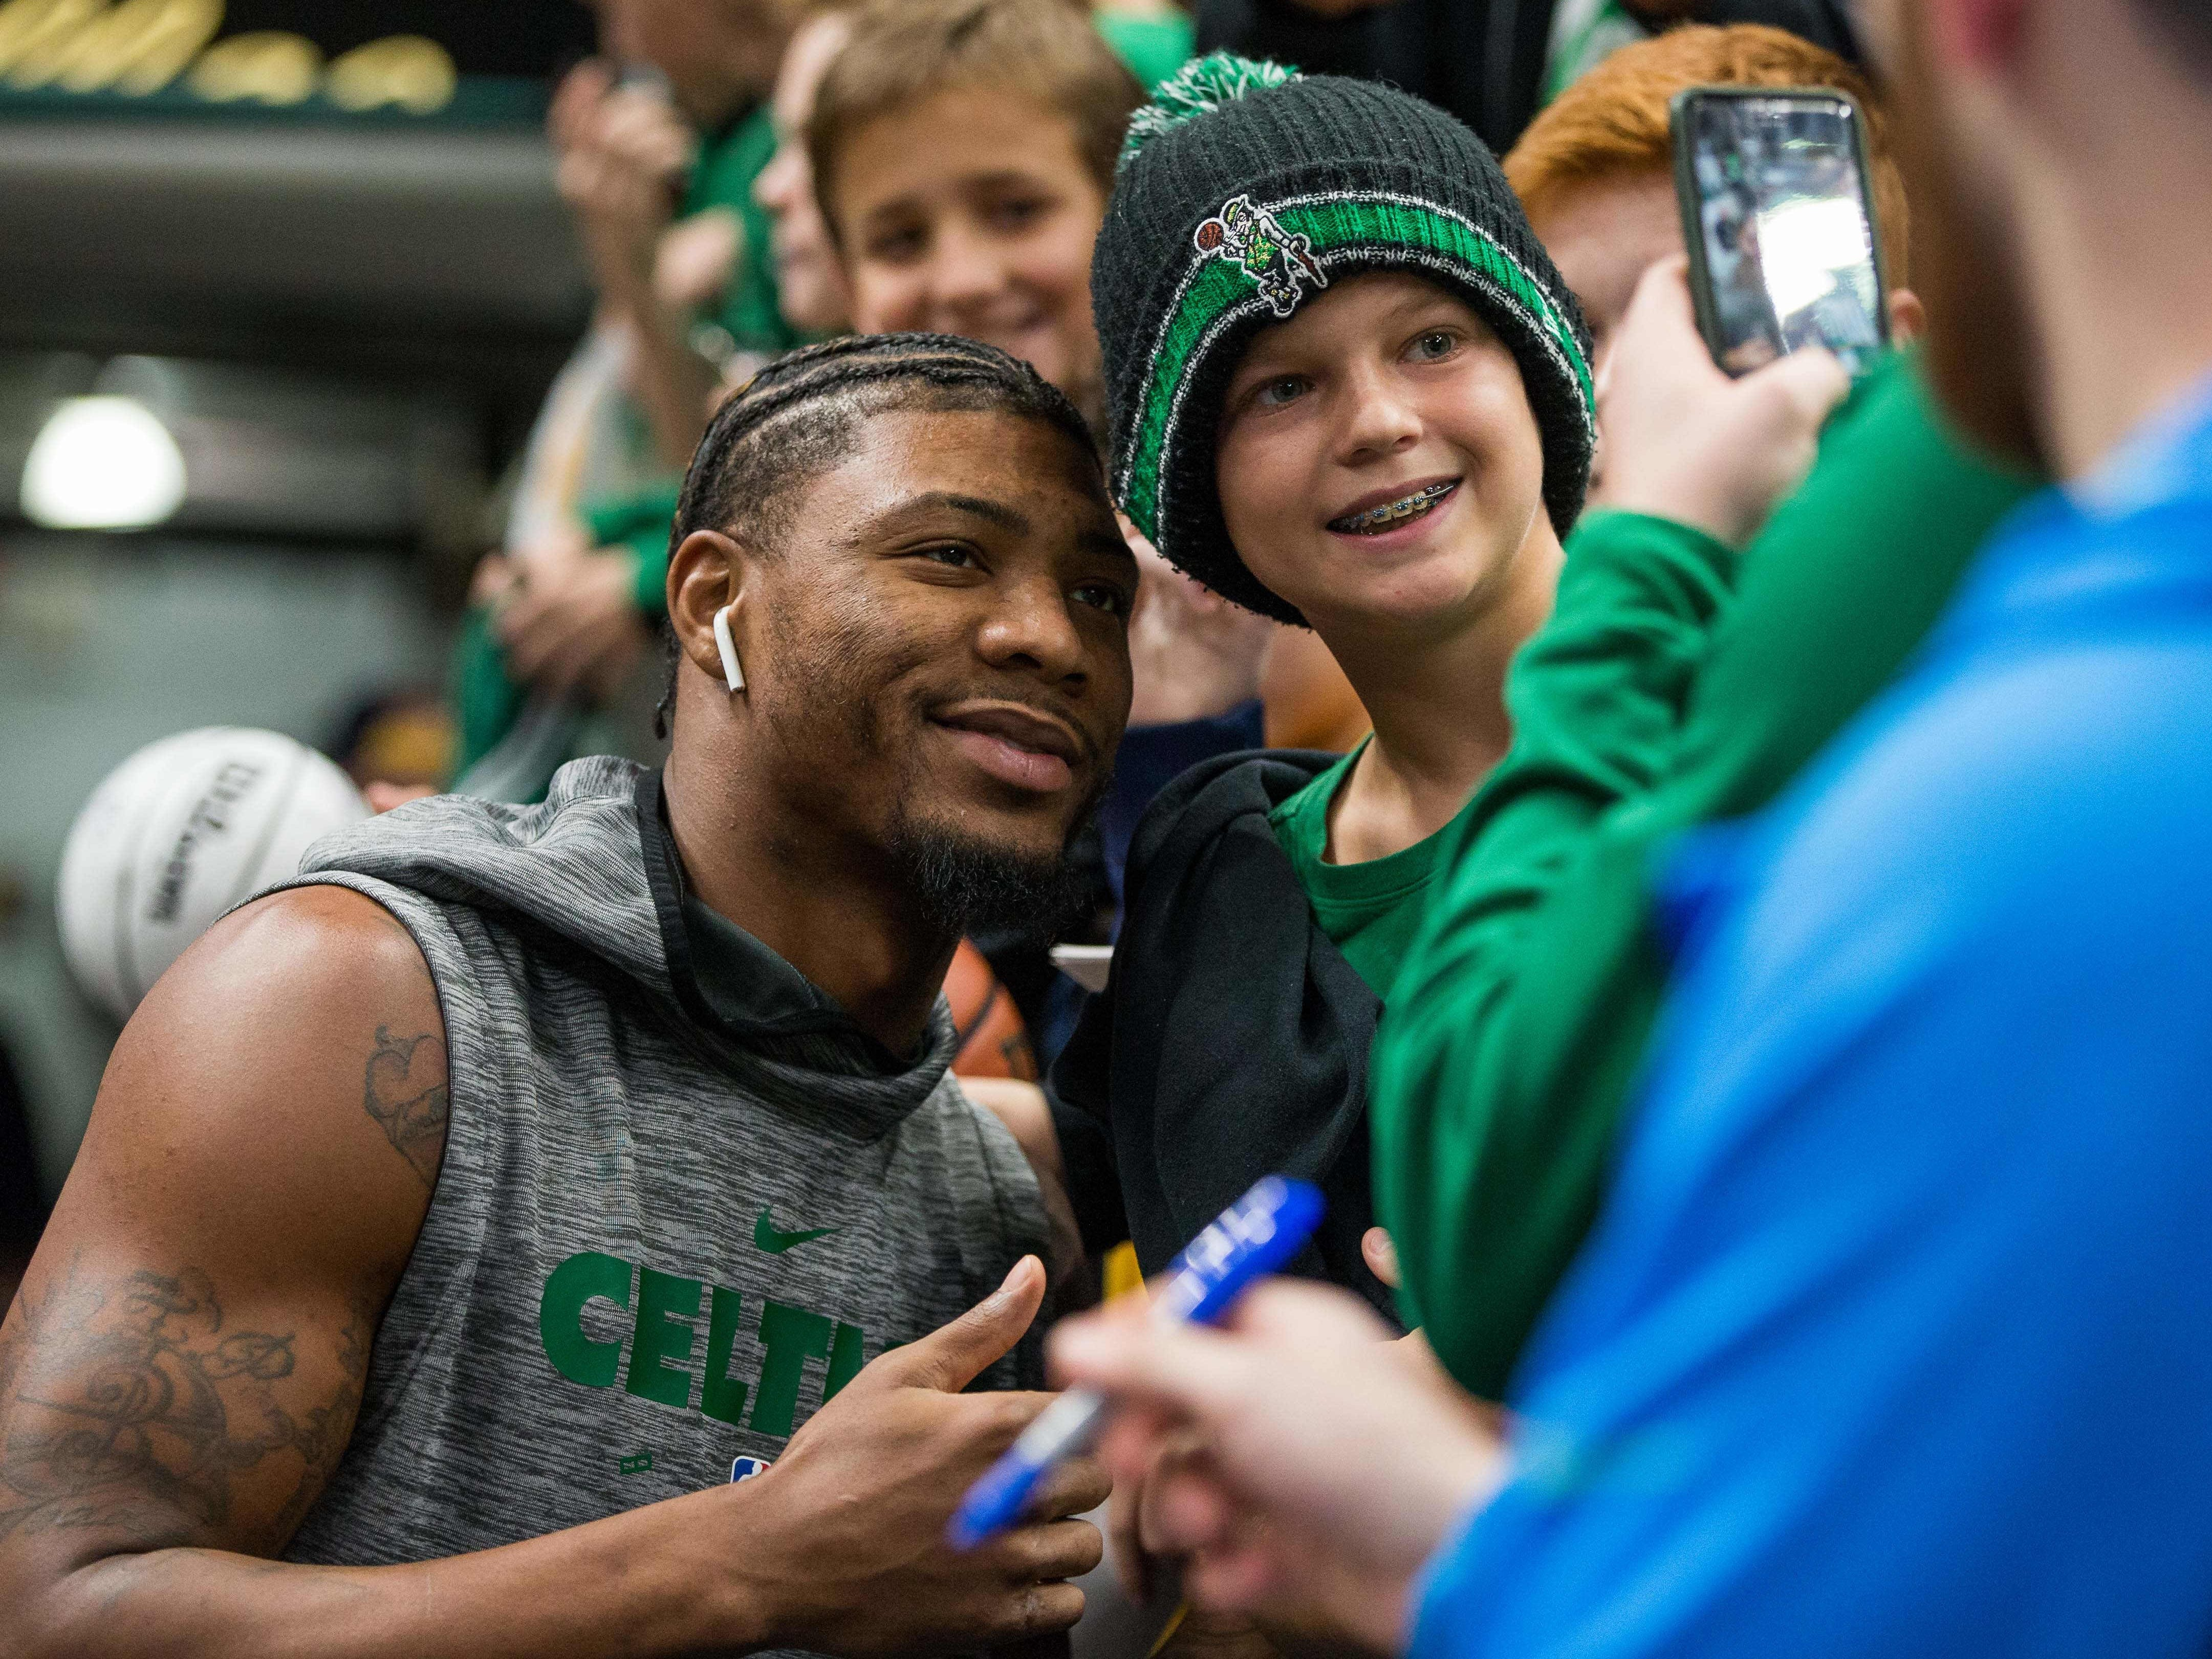 Nov. 3: Celtics guard Marcus Smart poses with a young fan before playing the Pacers in Indianapolis.